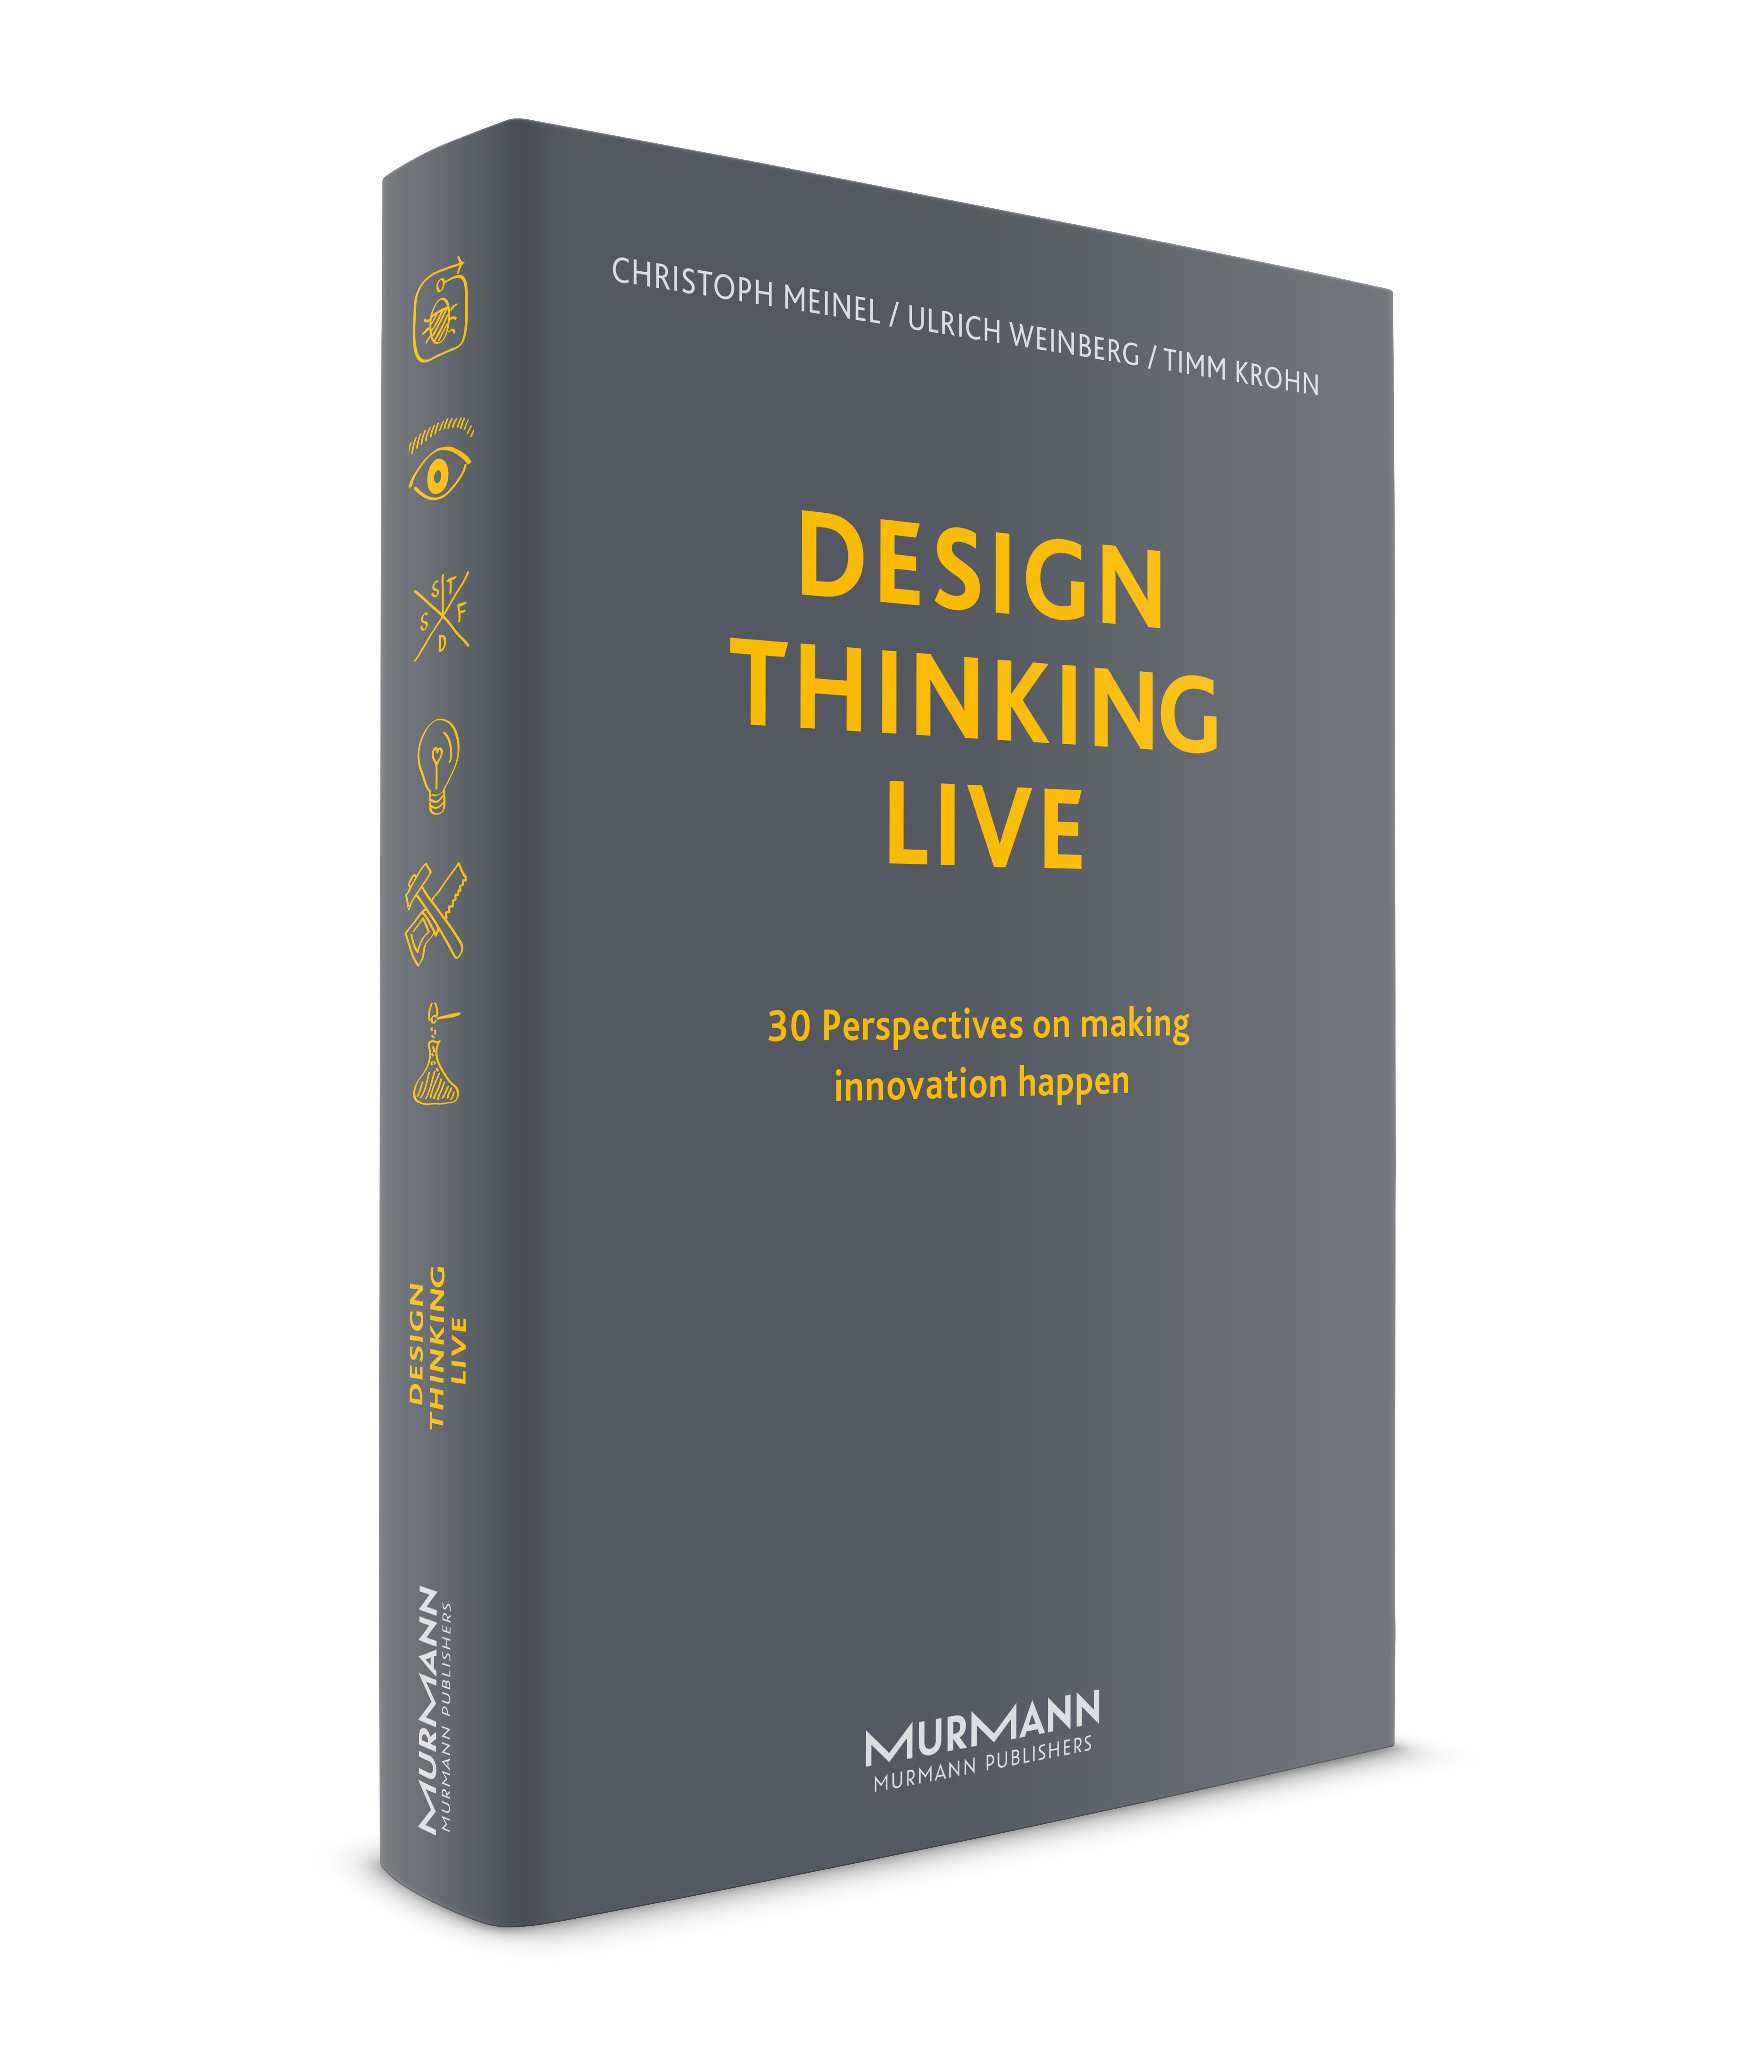 Design Thinking Live / Christoph Meinel, Ulrich Weinberg, Timm Kroh (engl. version)